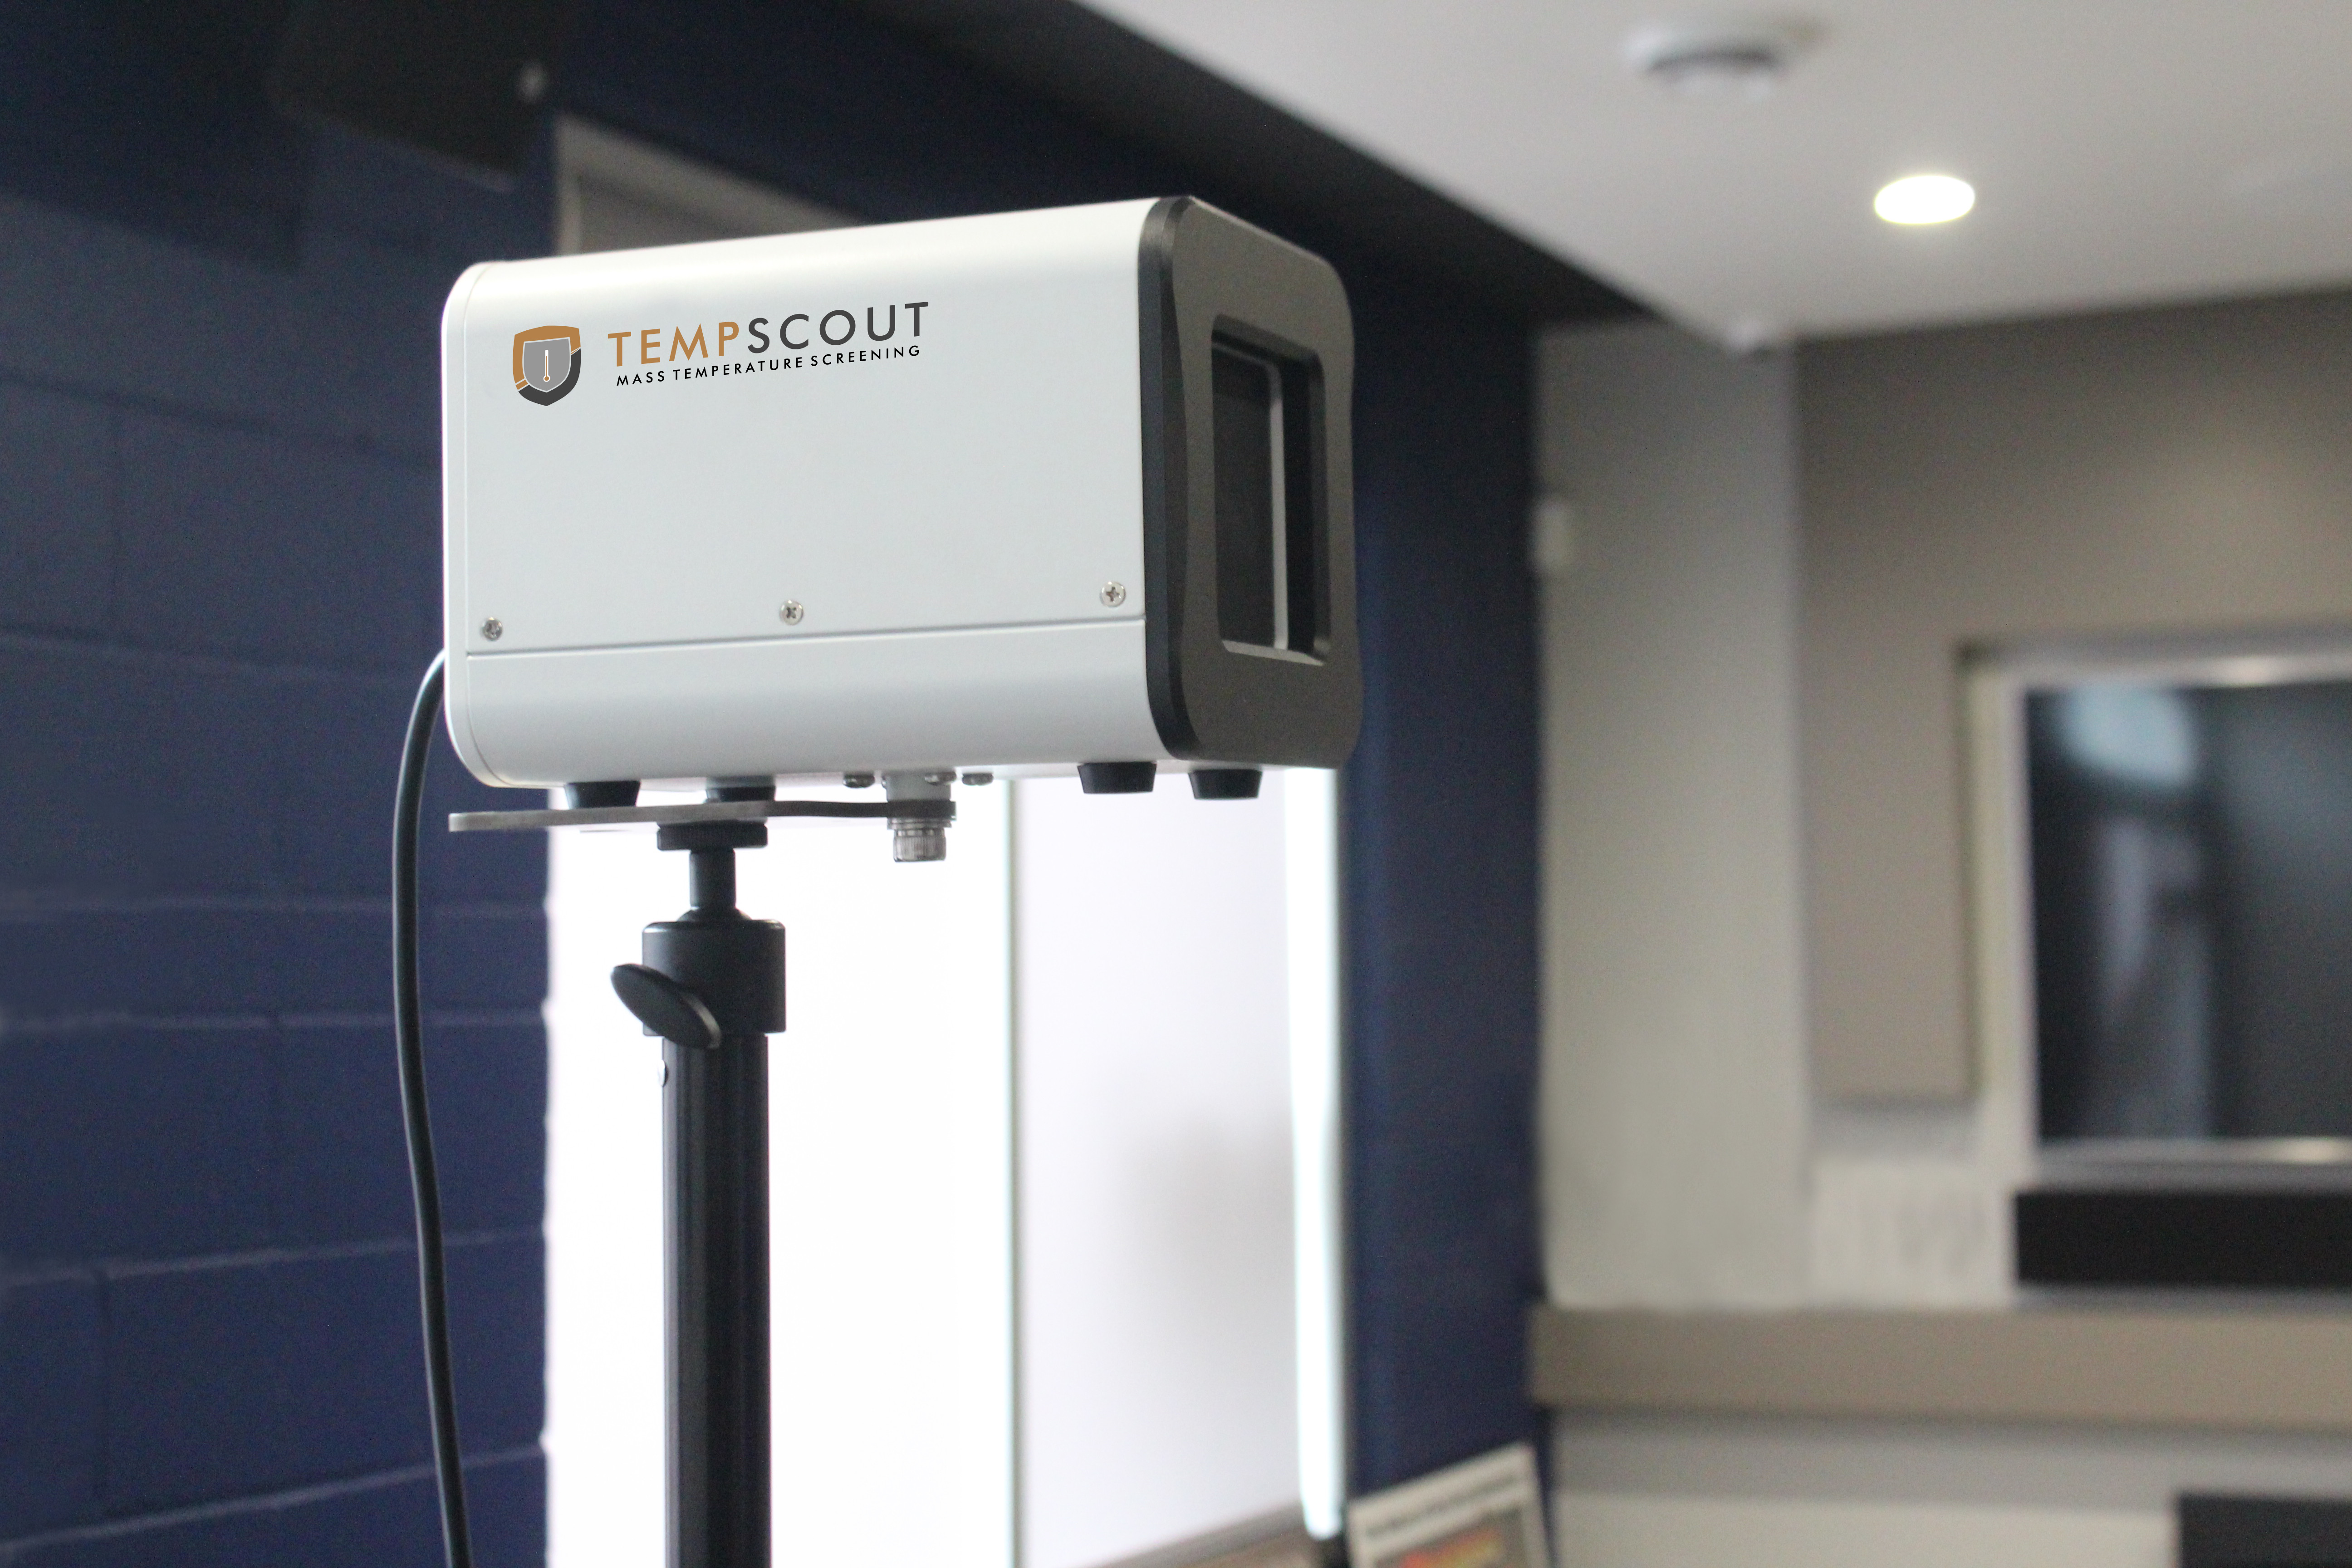 Backwoods Security Services Launches Thermal Temperature Screening Service: TempScout